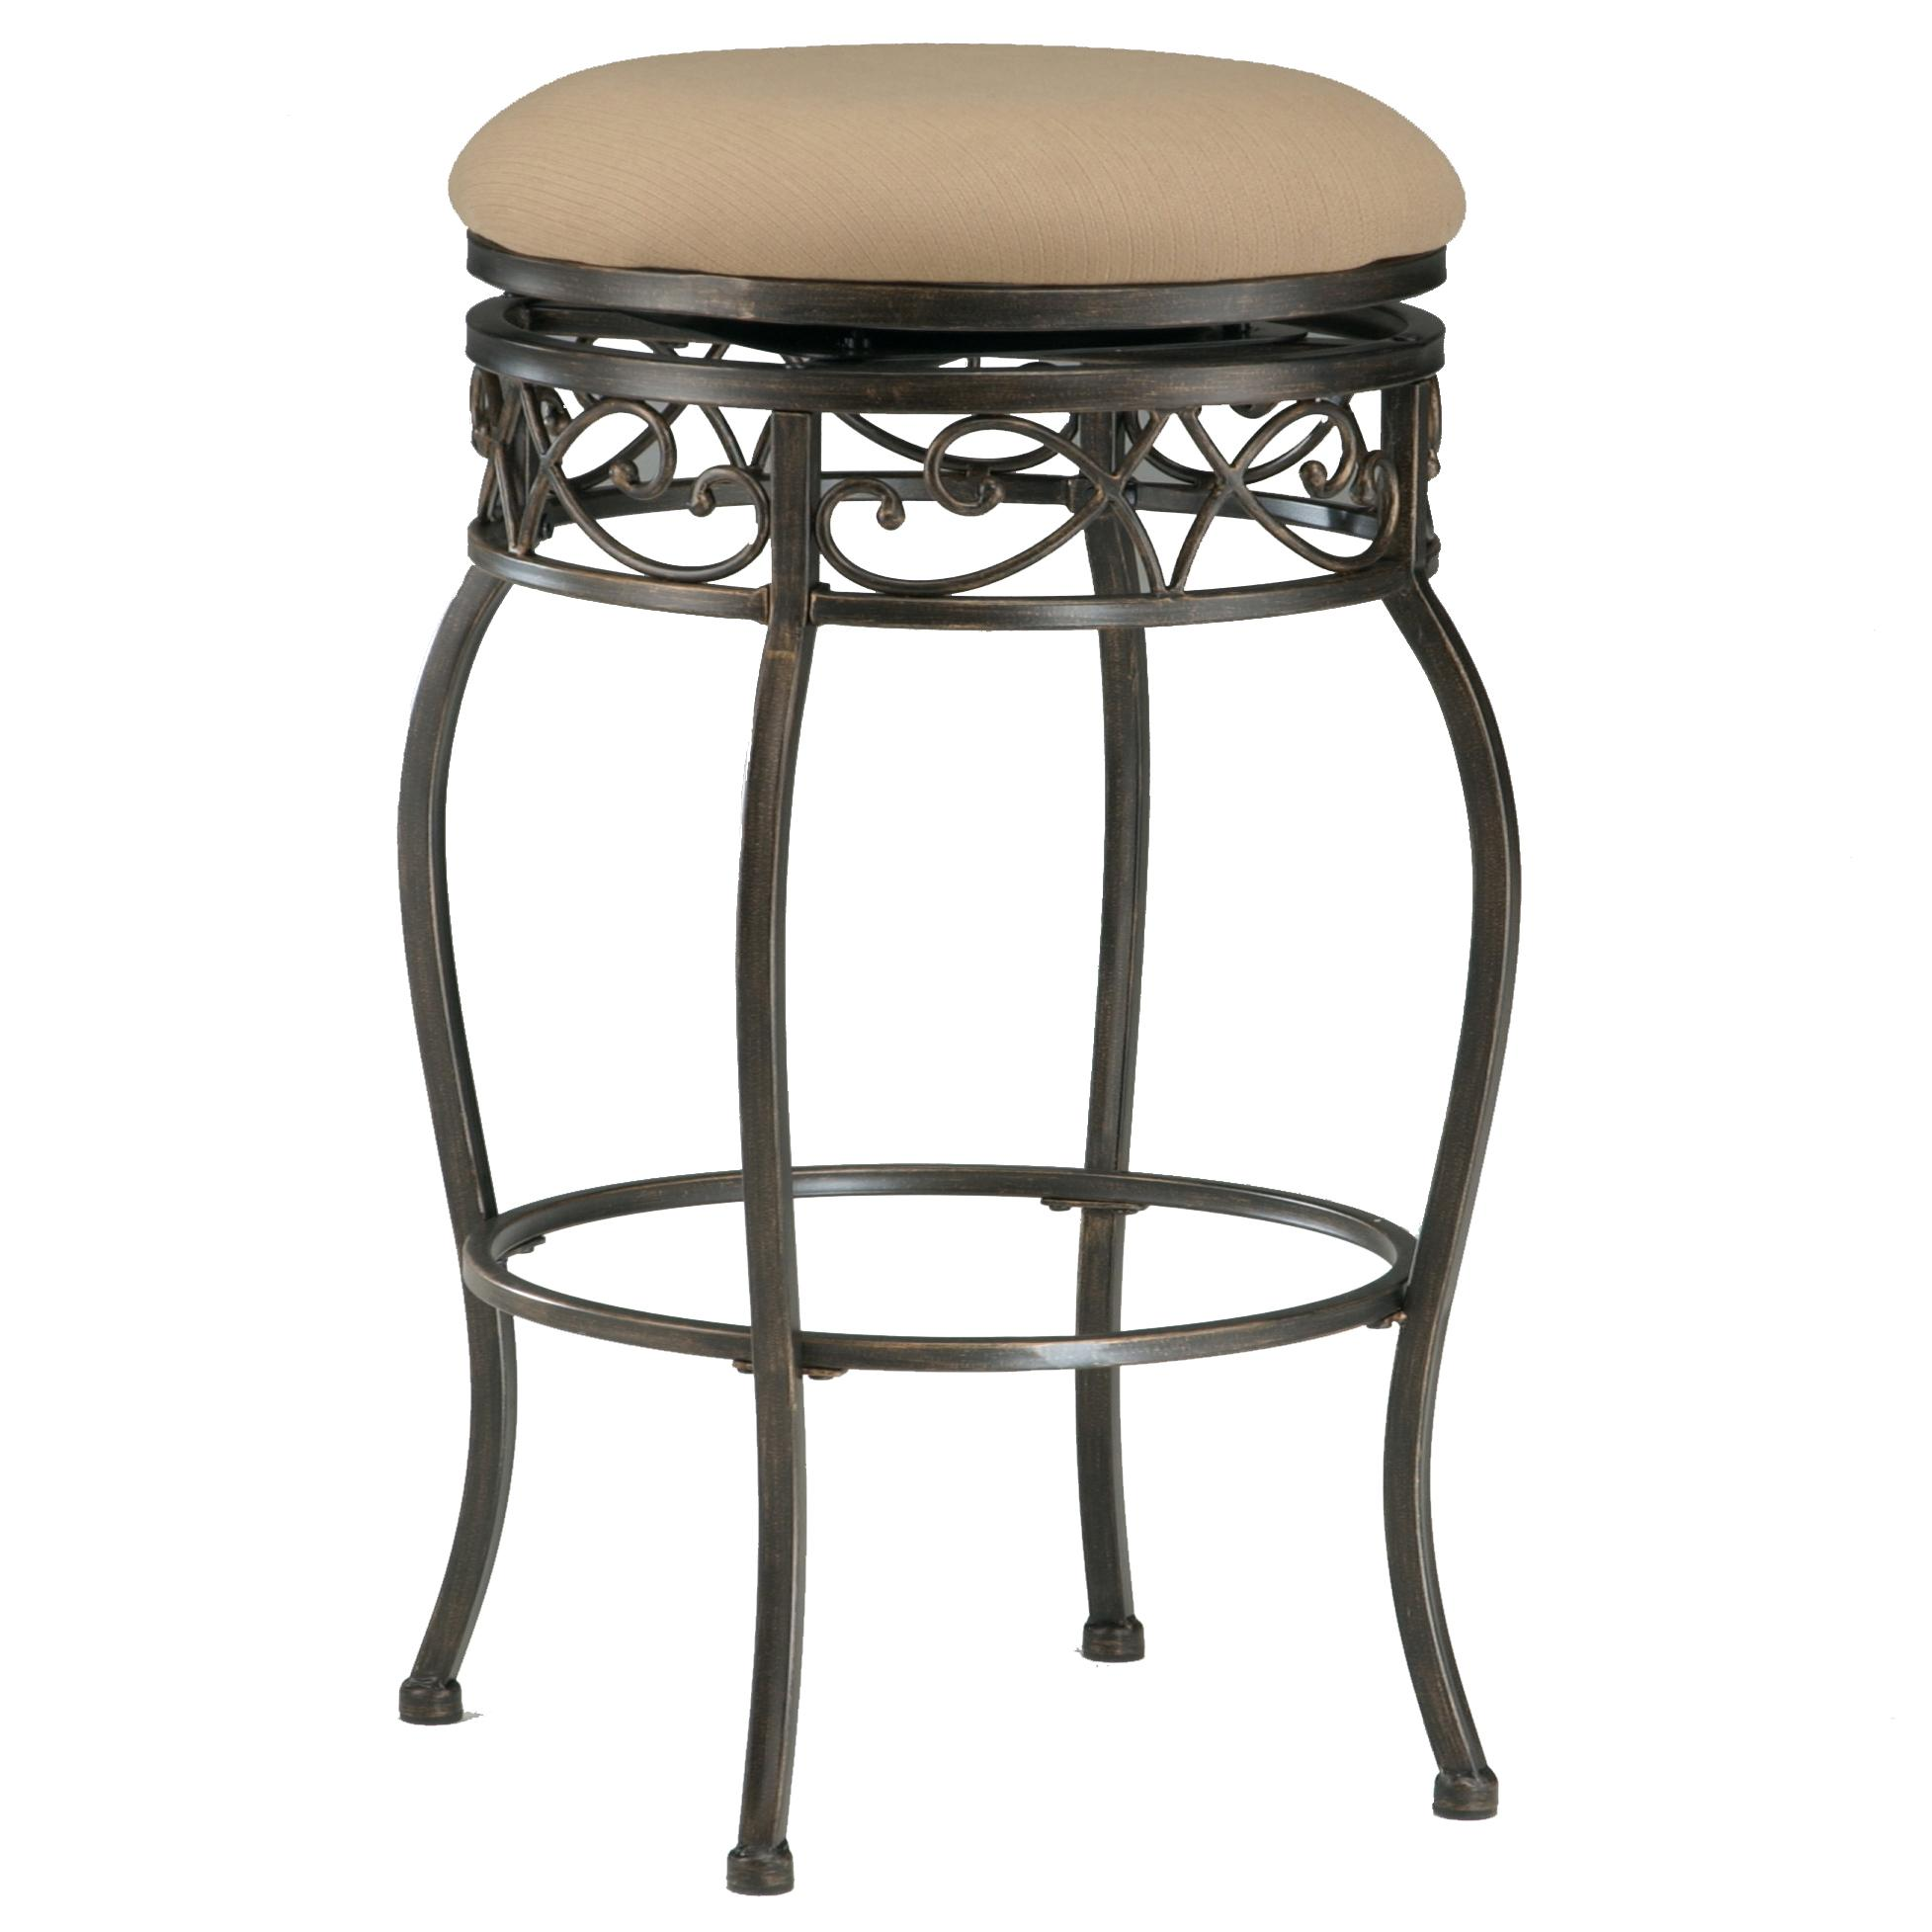 Hillsdale Backless Bar Stools 26  Backless Lincoln Swivel Counter Stool - Item Number 4336  sc 1 st  Dunk u0026 Bright Furniture & Hillsdale Backless Bar Stools 26